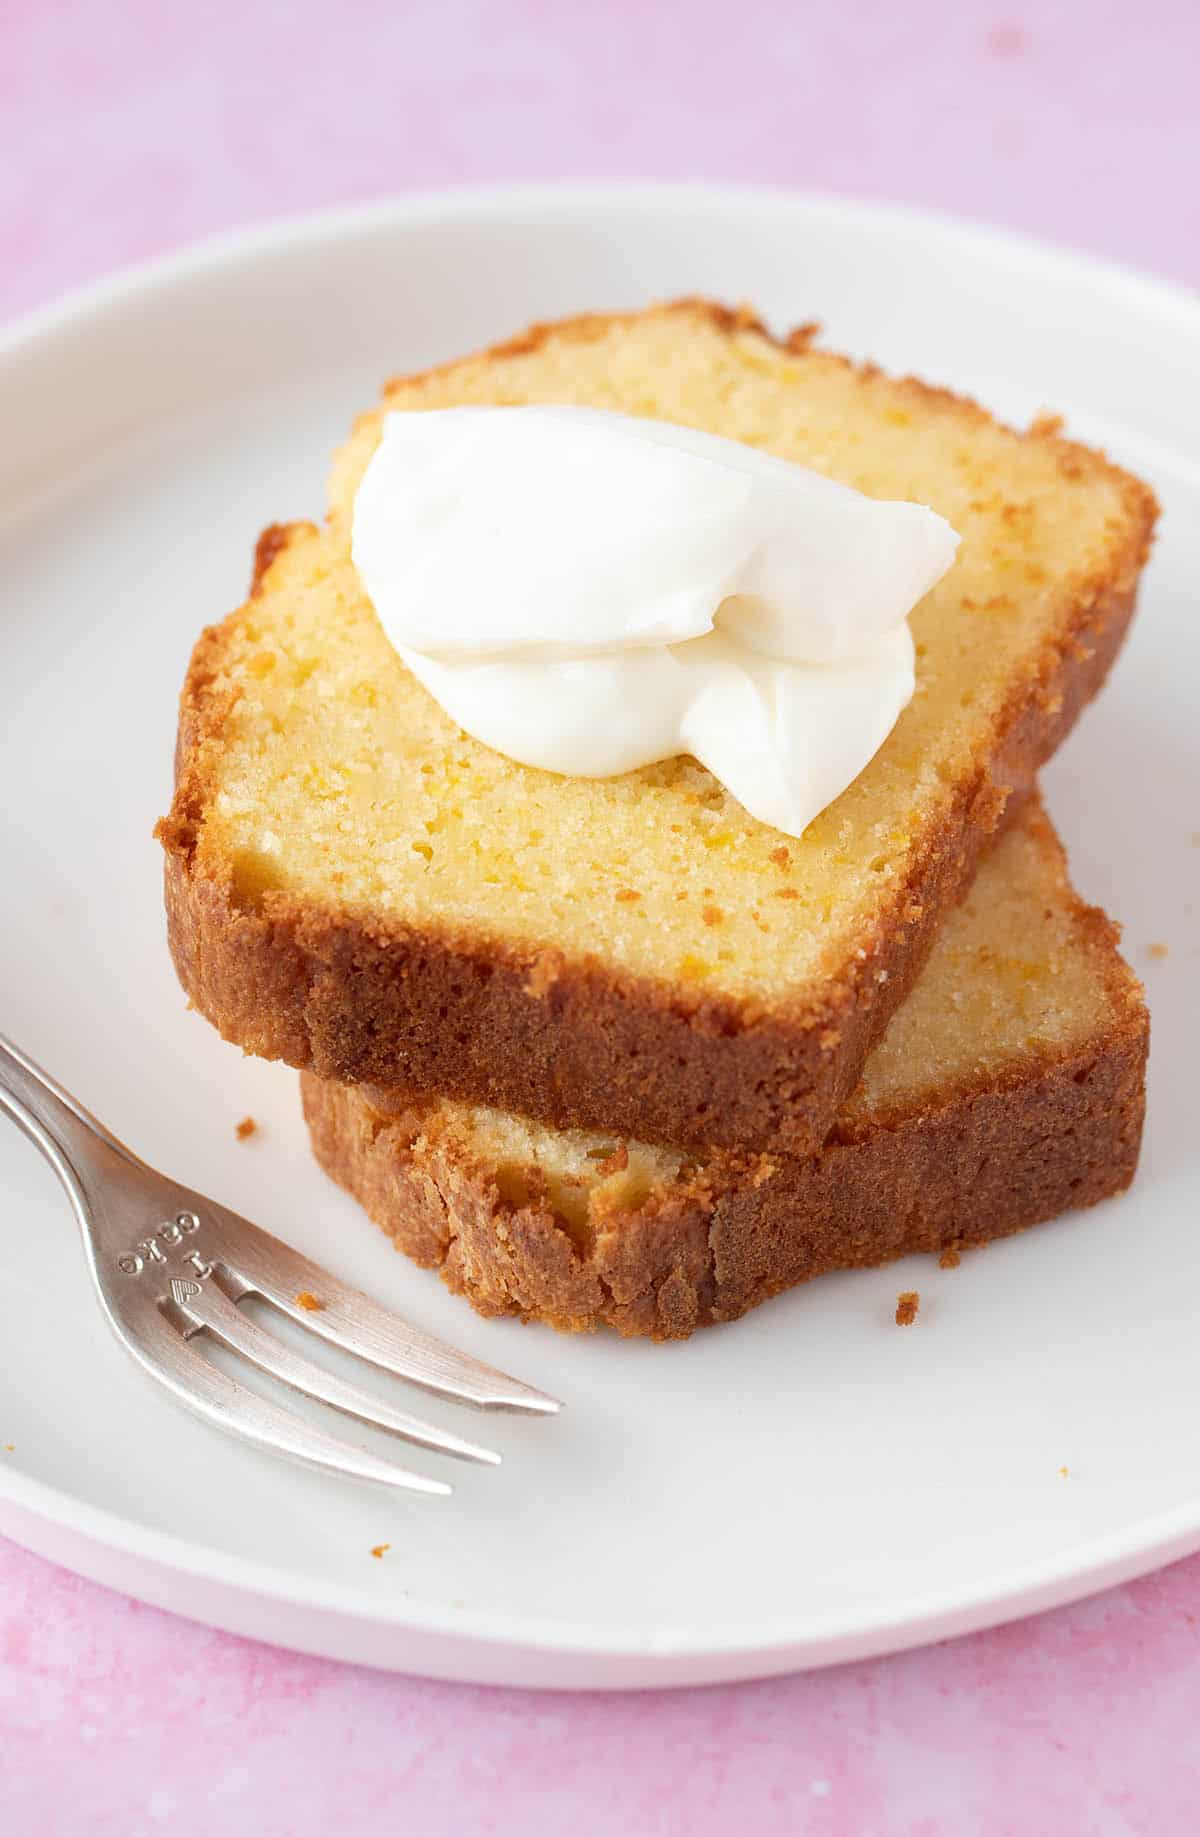 A piece of orange cake topping with whipped cream